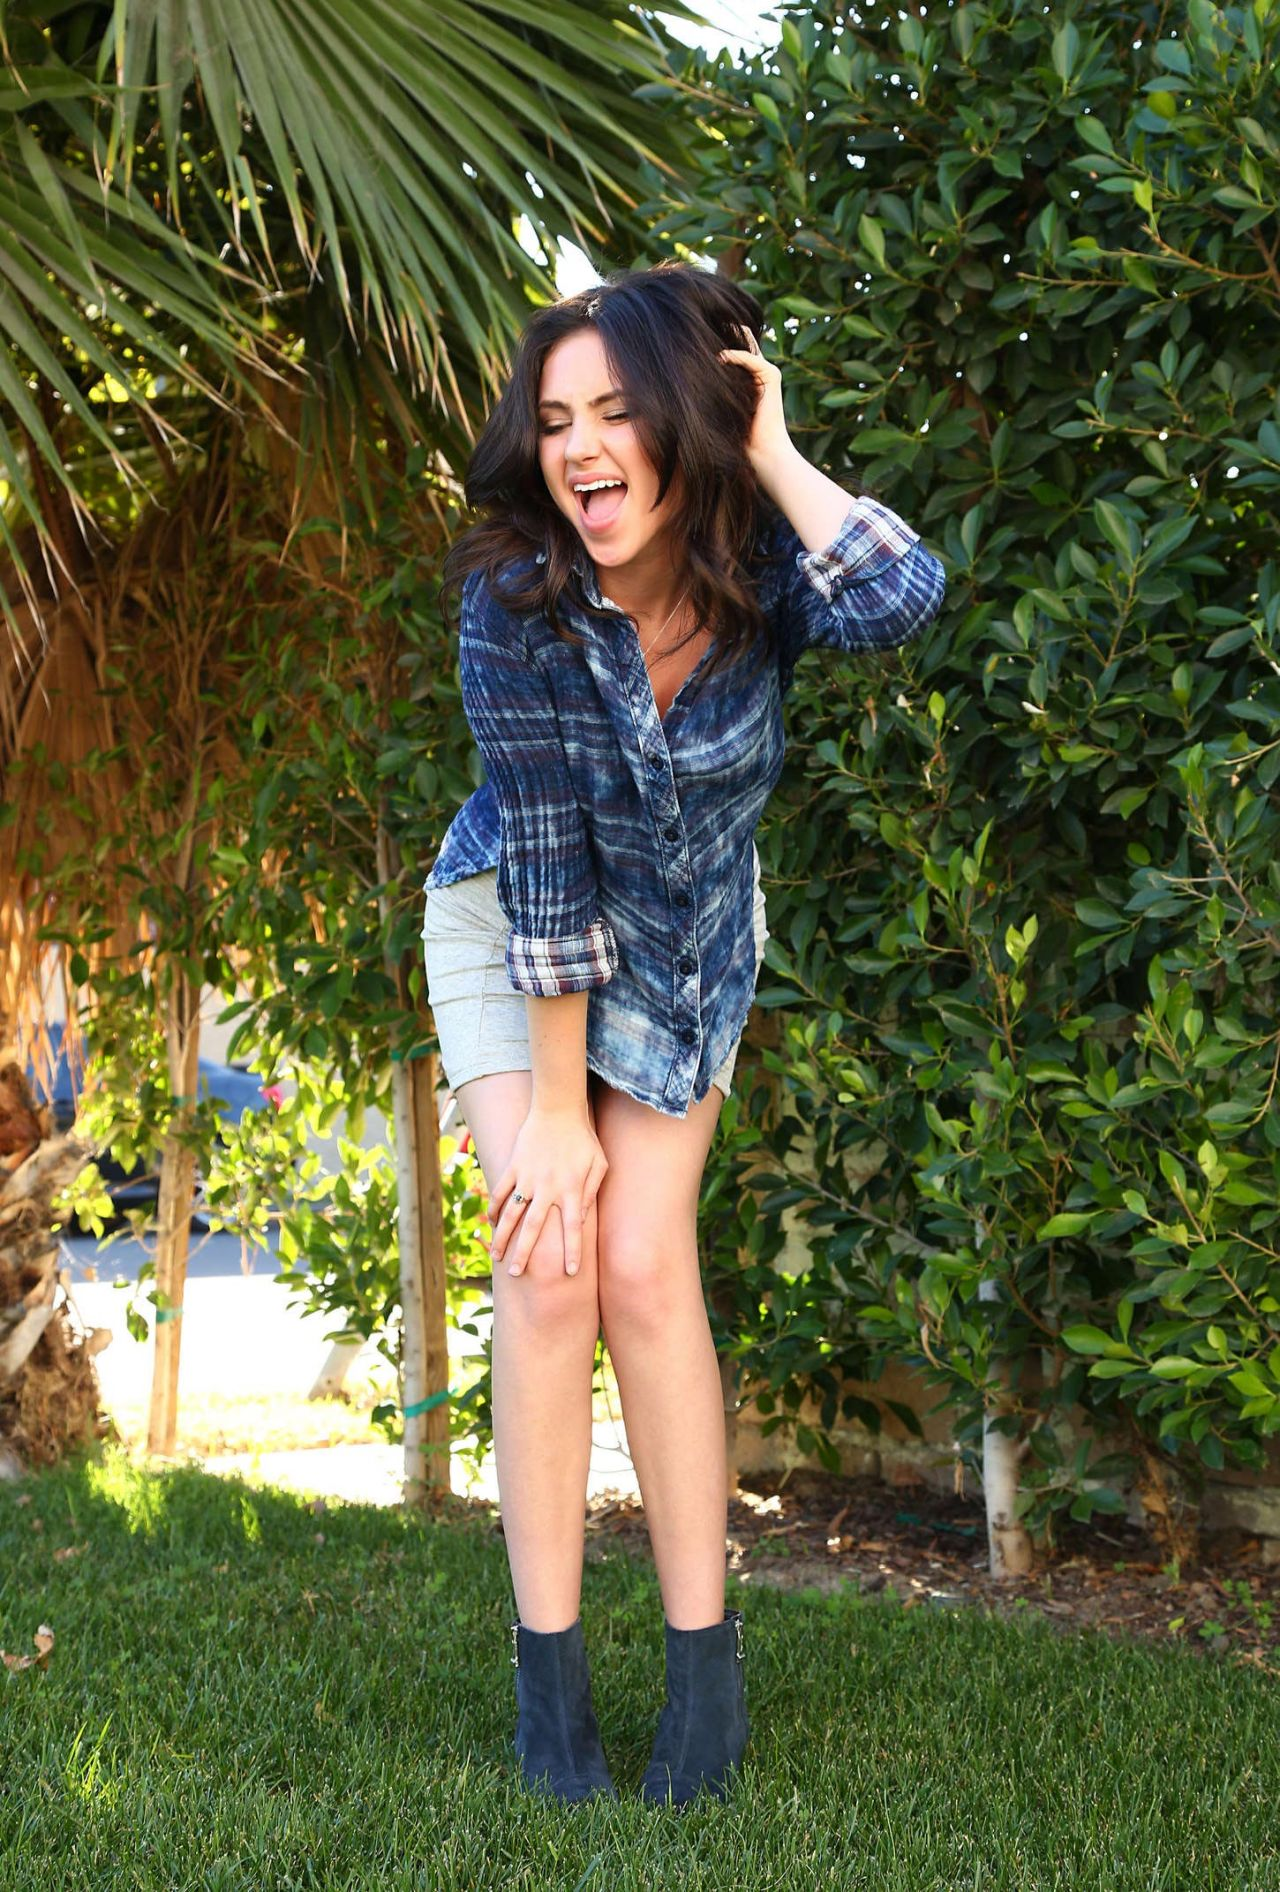 Ryan Newman: Sara Jaye Weiss Photoshoot in LA -38 – GotCeleb